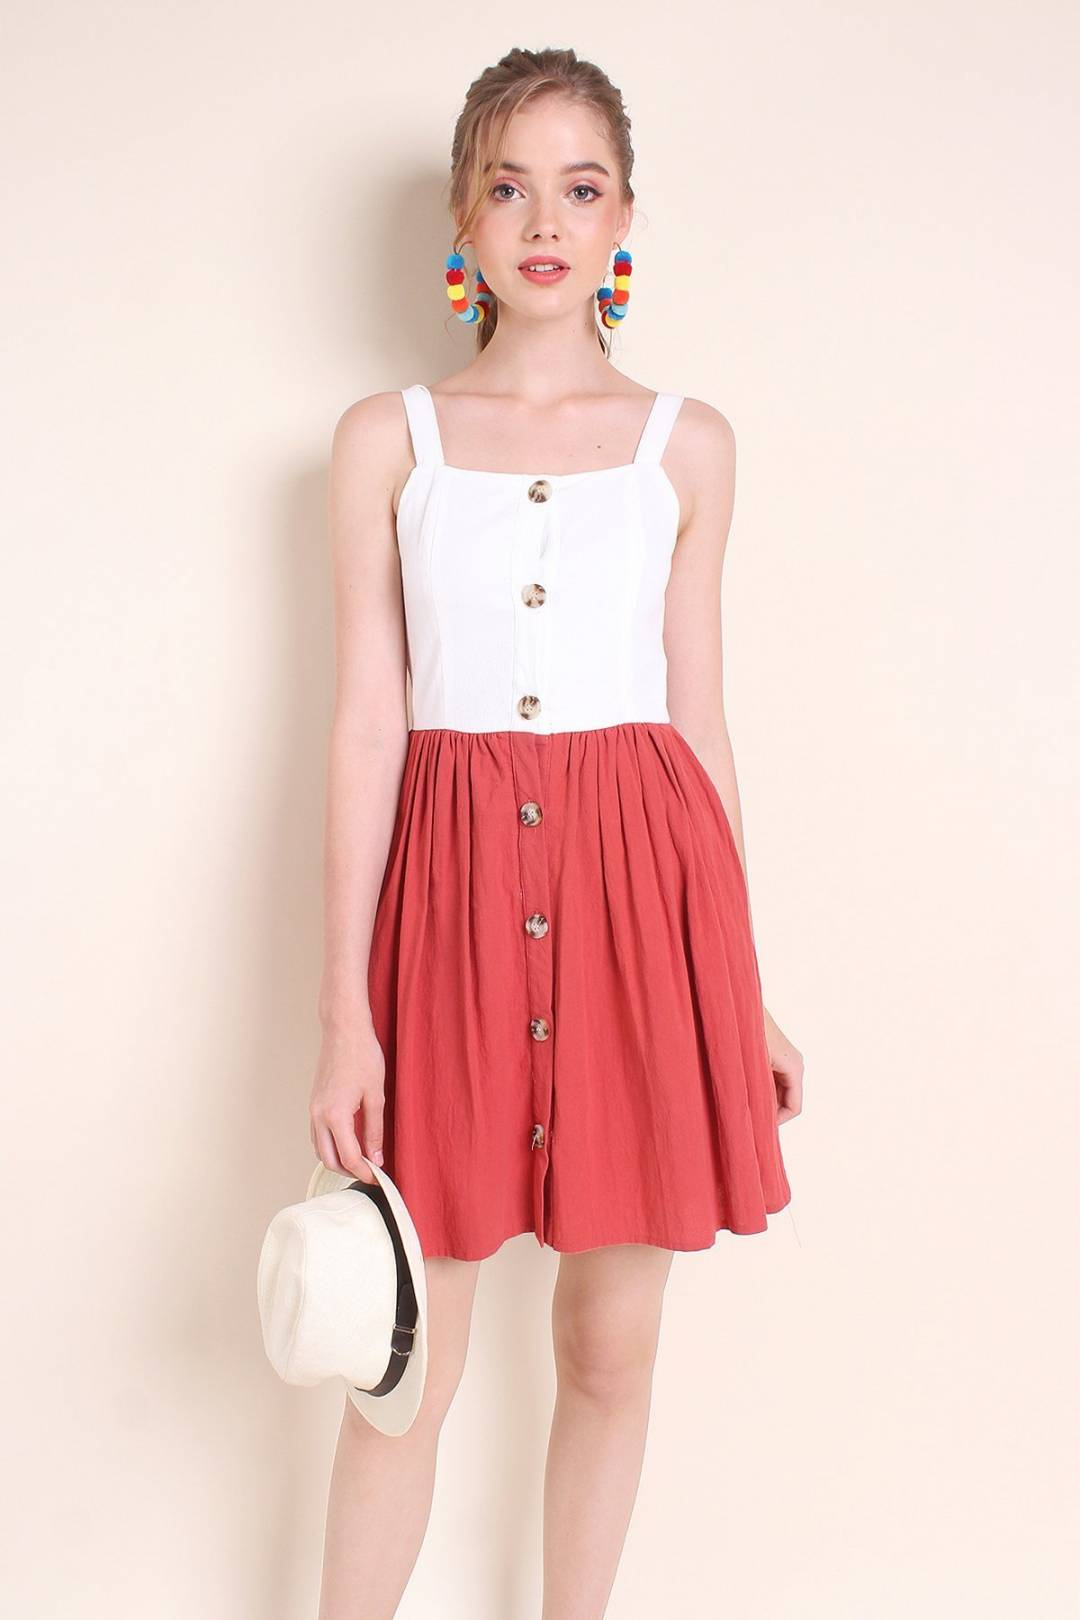 MADEBYNM ARDELLA BUTTONS LINEN COLOURBLOCK DRESS IN WHITE/ROSE [XS/S/M/L]